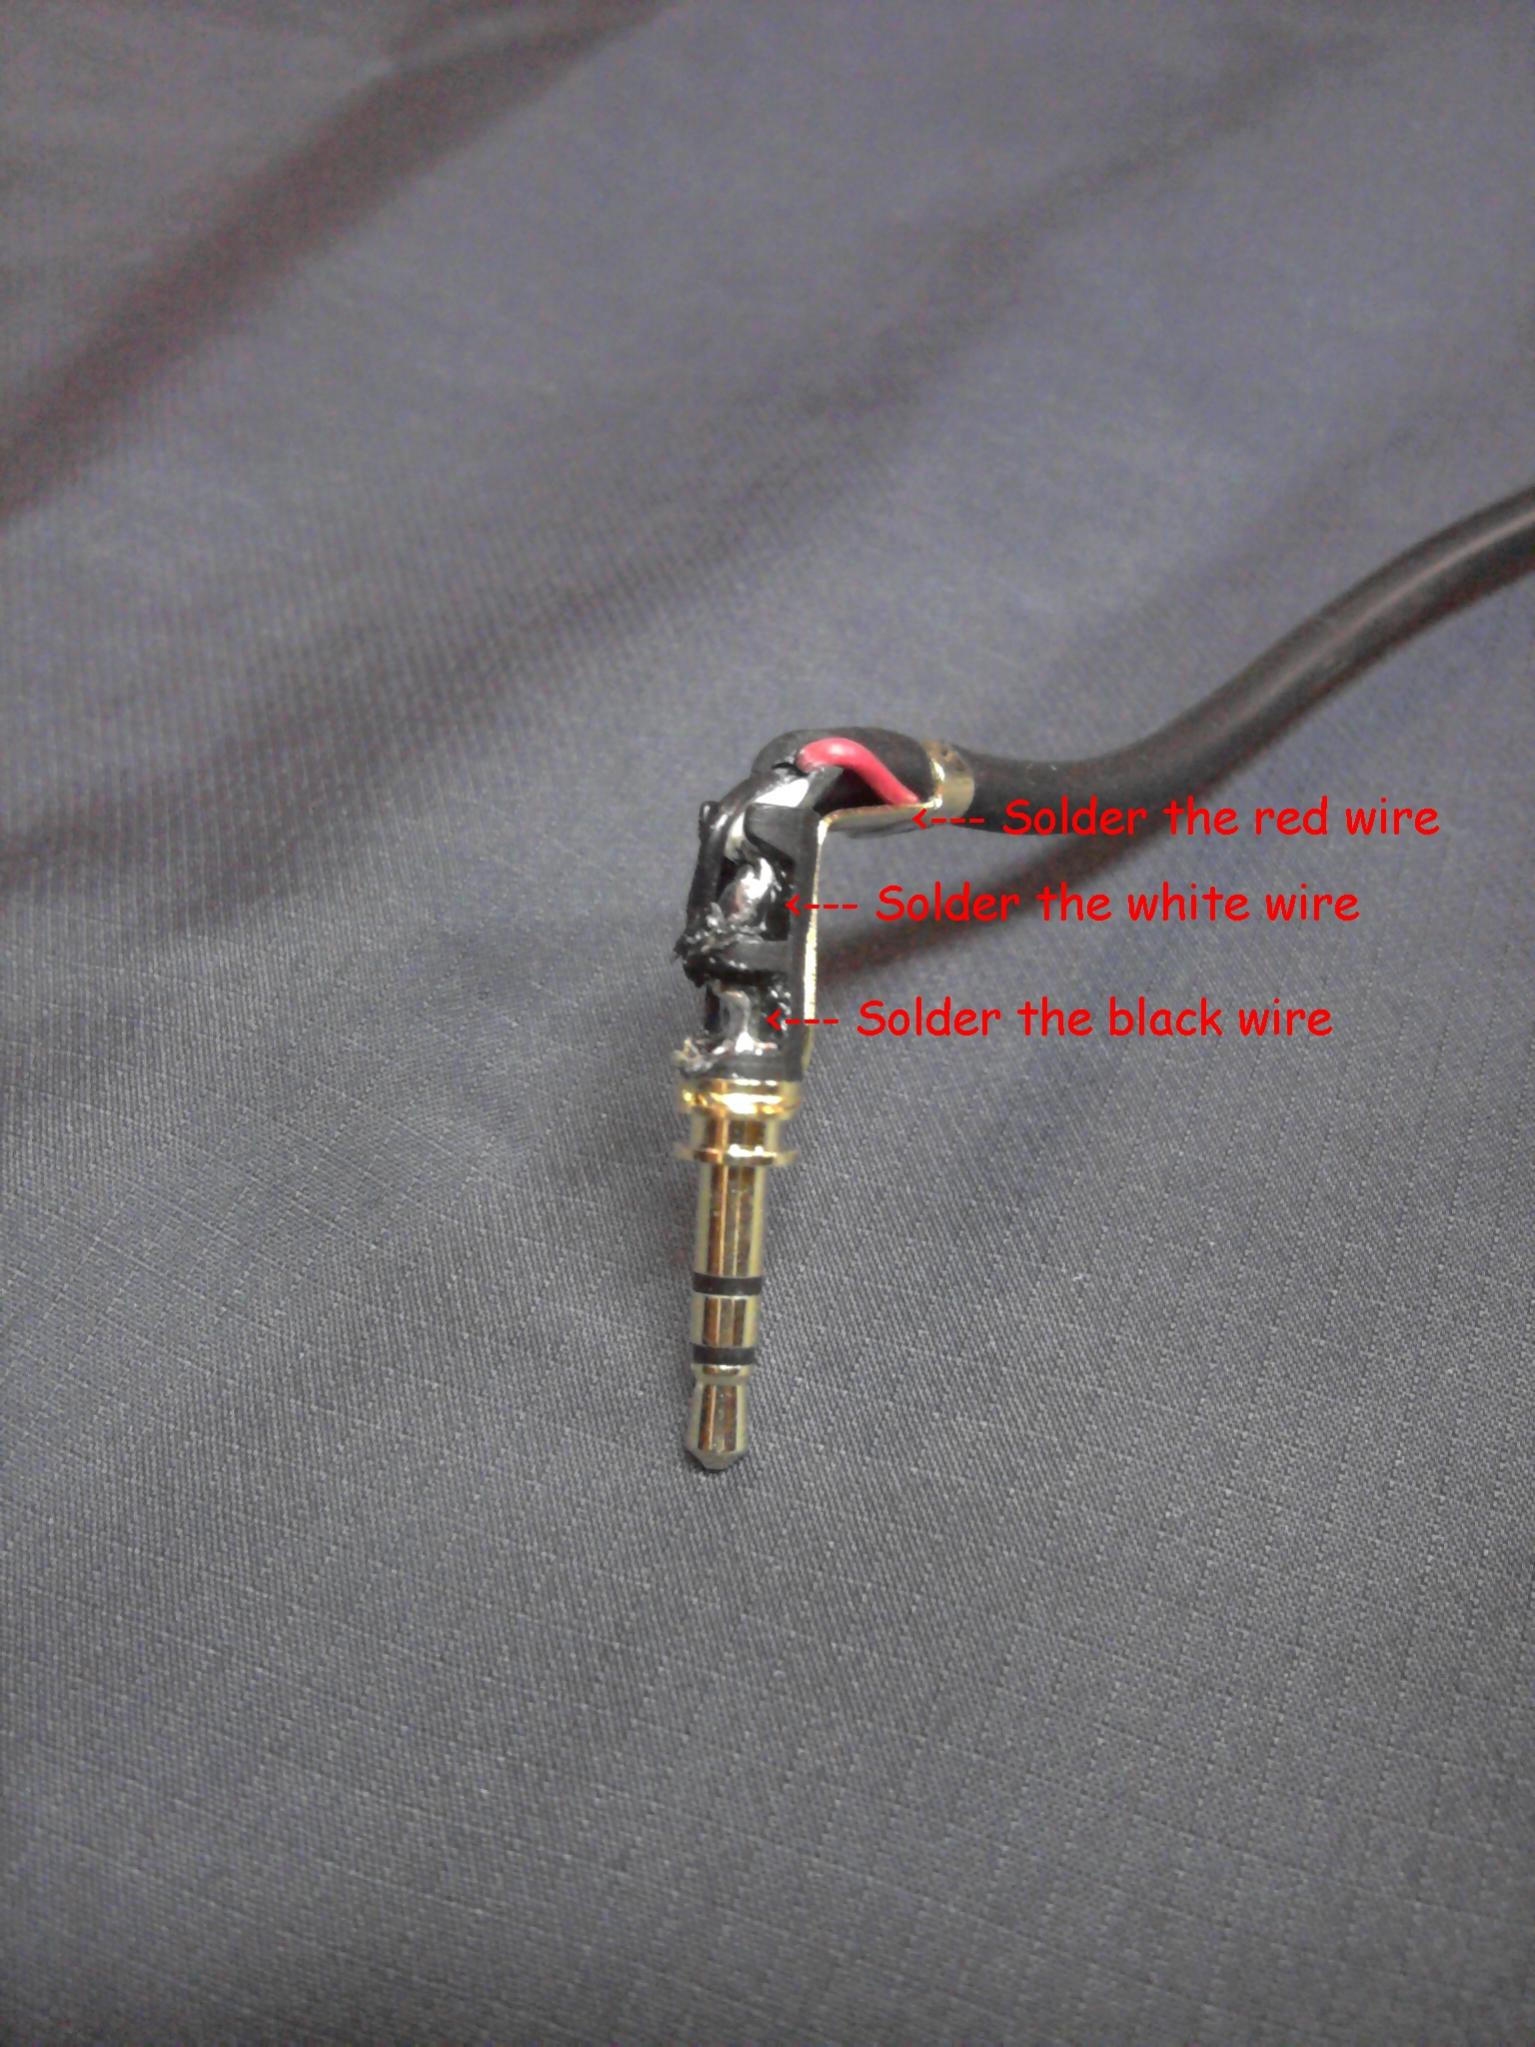 external ir receiver for hd300 sagetv community connection wiring jpg